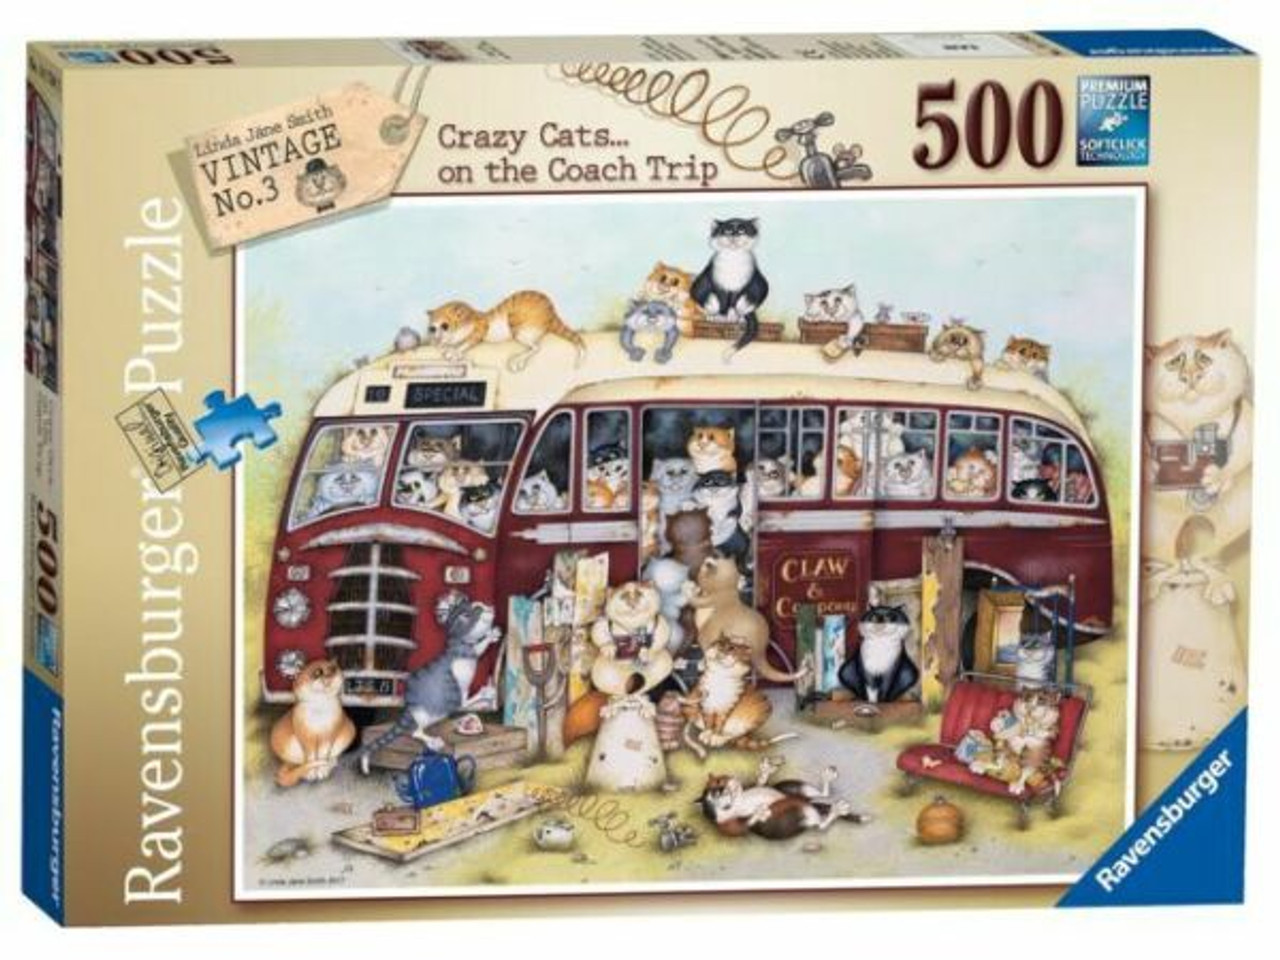 CRAZY CATS ON THE COACH TRIP PUZZLE 500 PCS